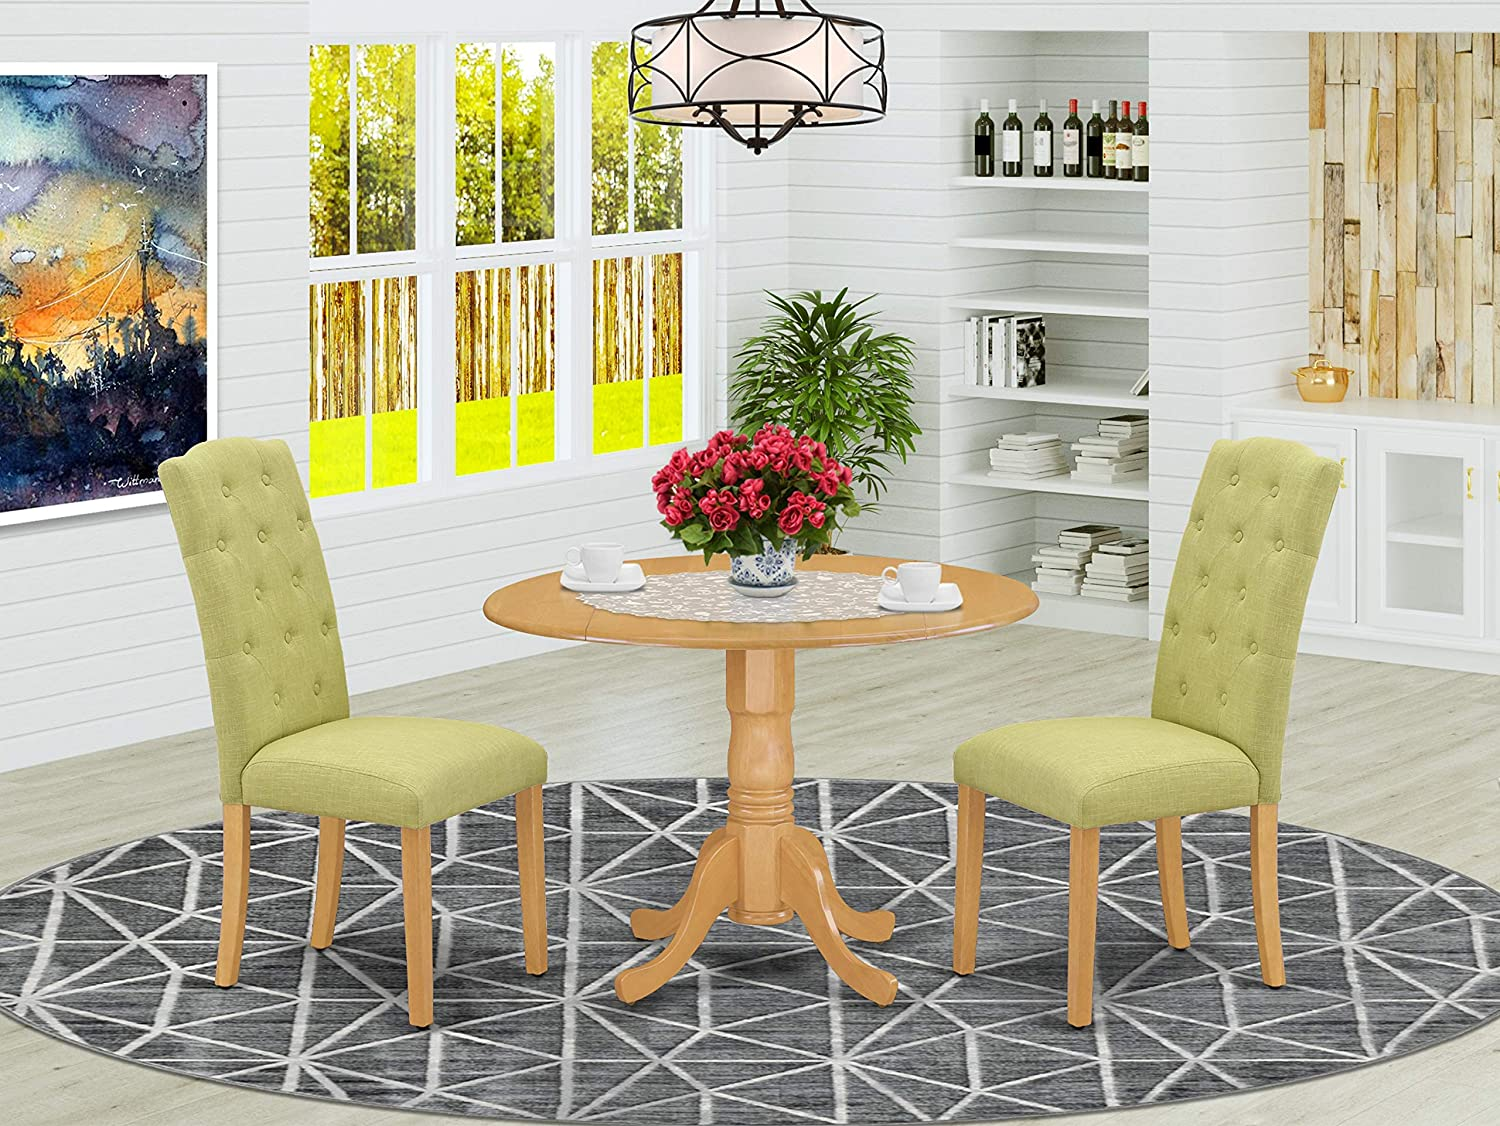 East West Furniture Kitchen Set 3 Pc - Lime Green Linen Fabric Button-tufted Kitchen Parson Chairs - Oak Finish Hardwood drop leaves Pedestal Dining Table and Structure